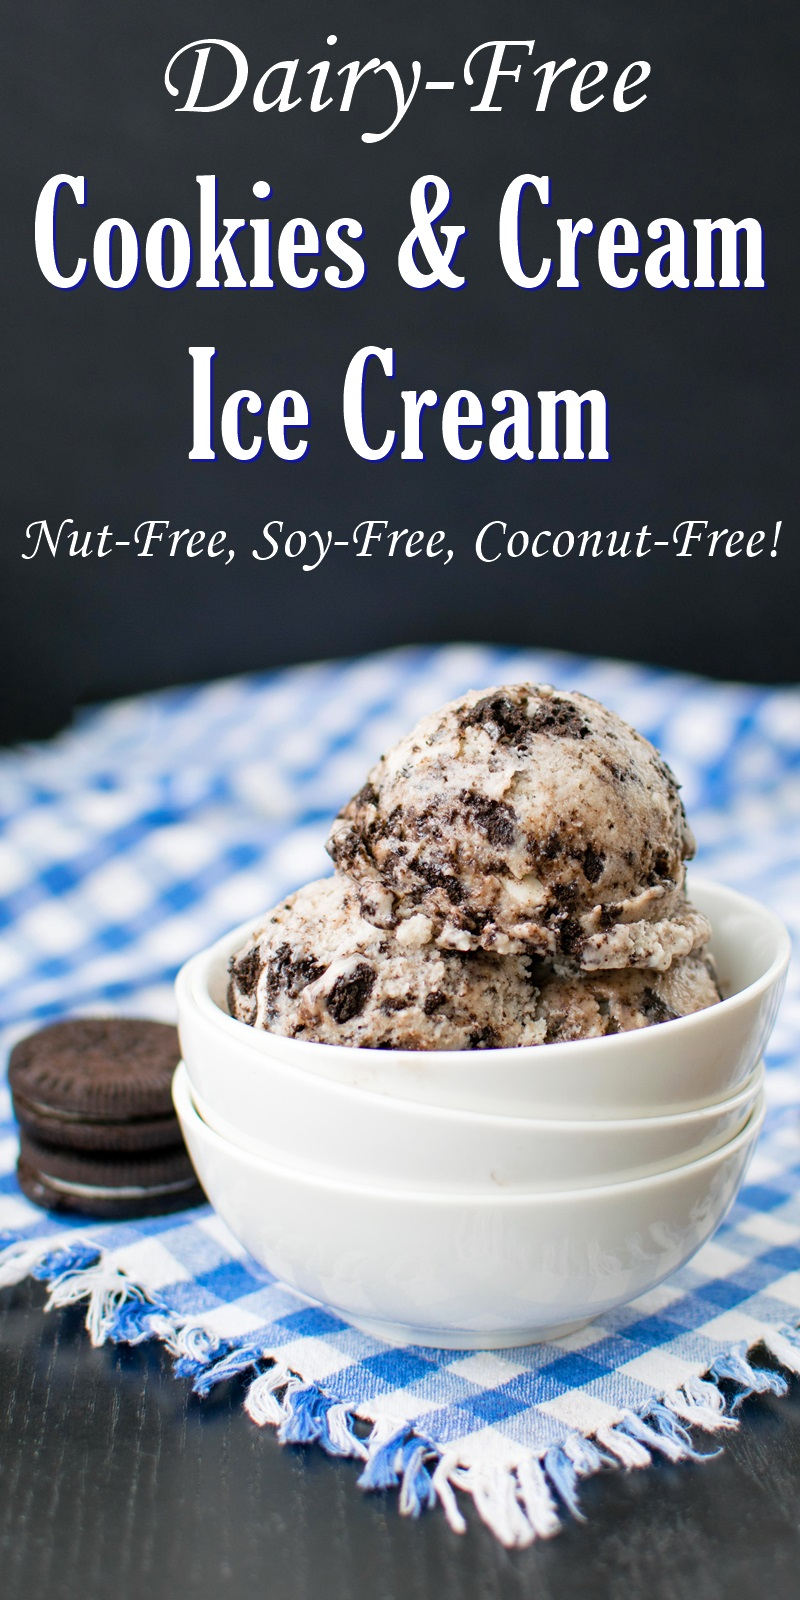 Dairy-Free Cookies and Cream Ice Cream Recipe - creamy, vegan, nut-free, soy-free, and coconut-free!